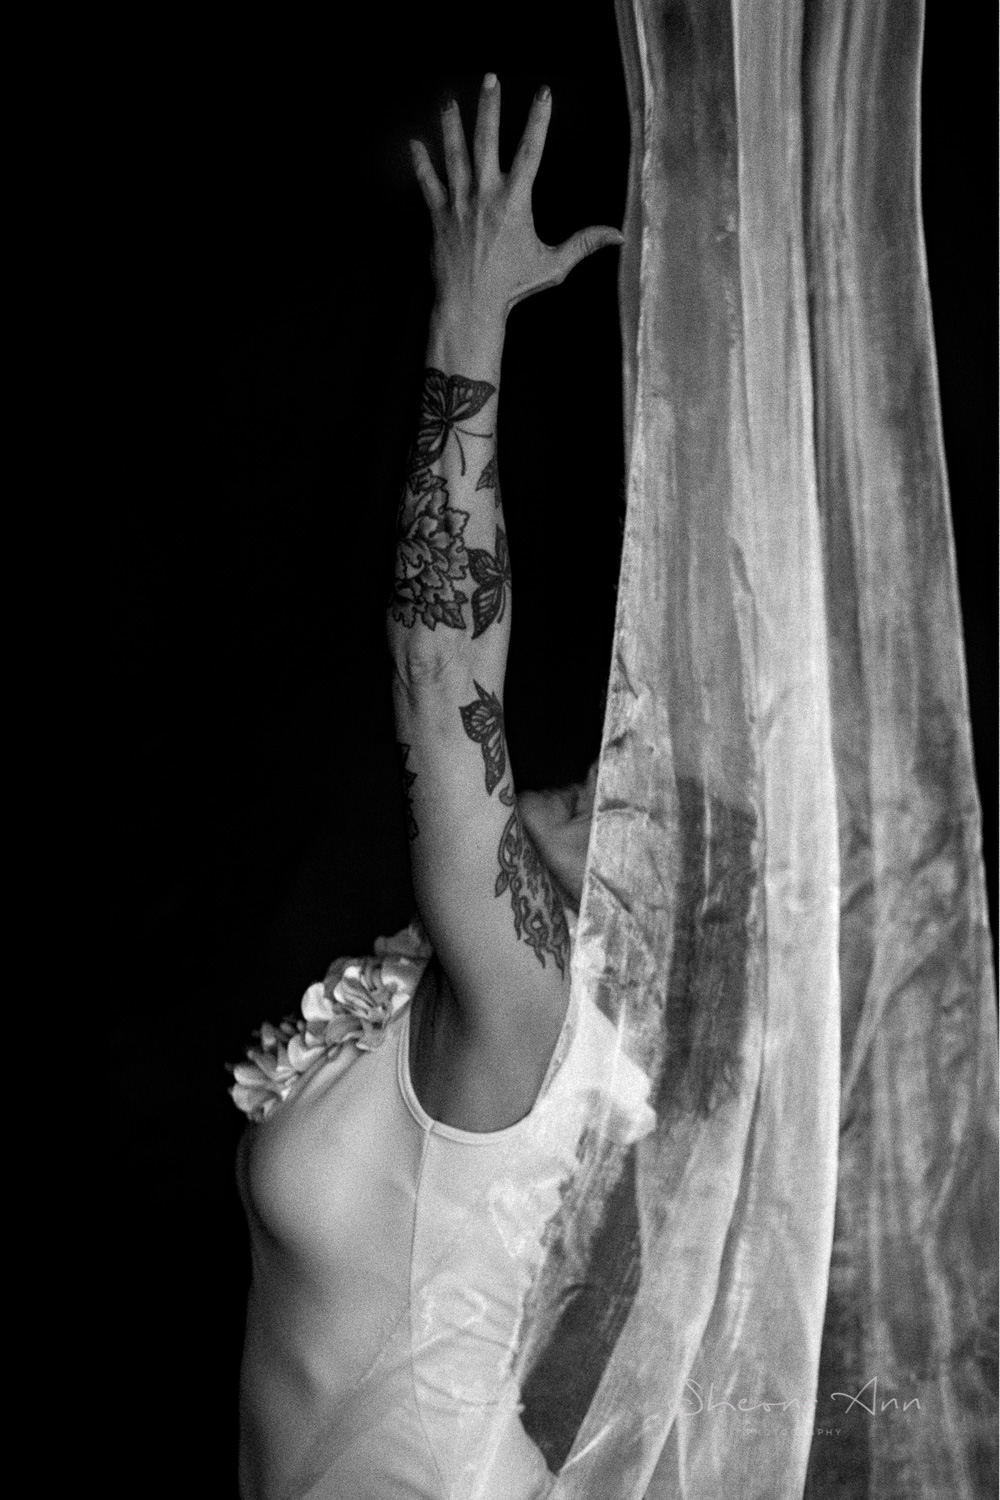 Vanessa-yoga-bw-Sheona-Ann-Photography (13 of 41).jpg